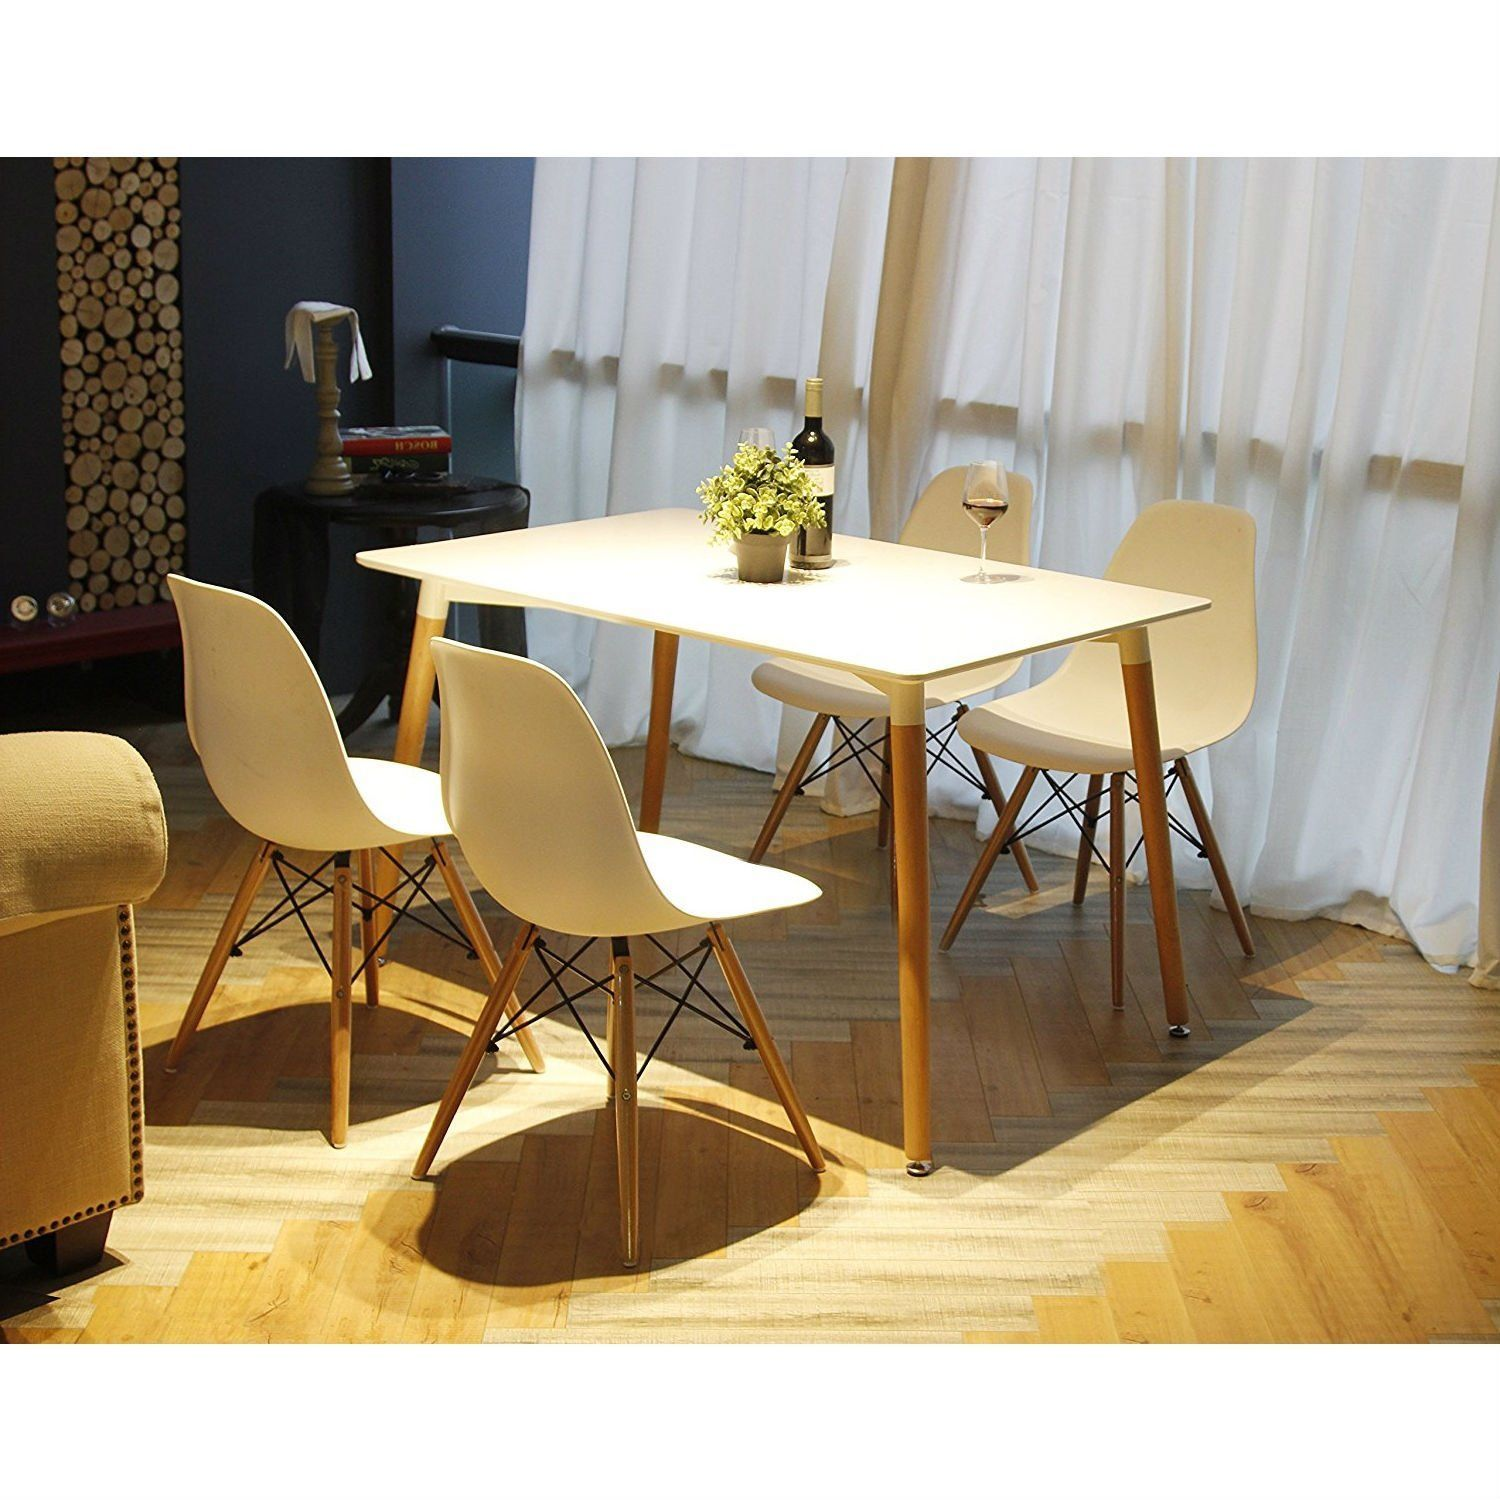 set of 4 modern ergonomic dining chairs in white with wood legs rh pinterest co uk